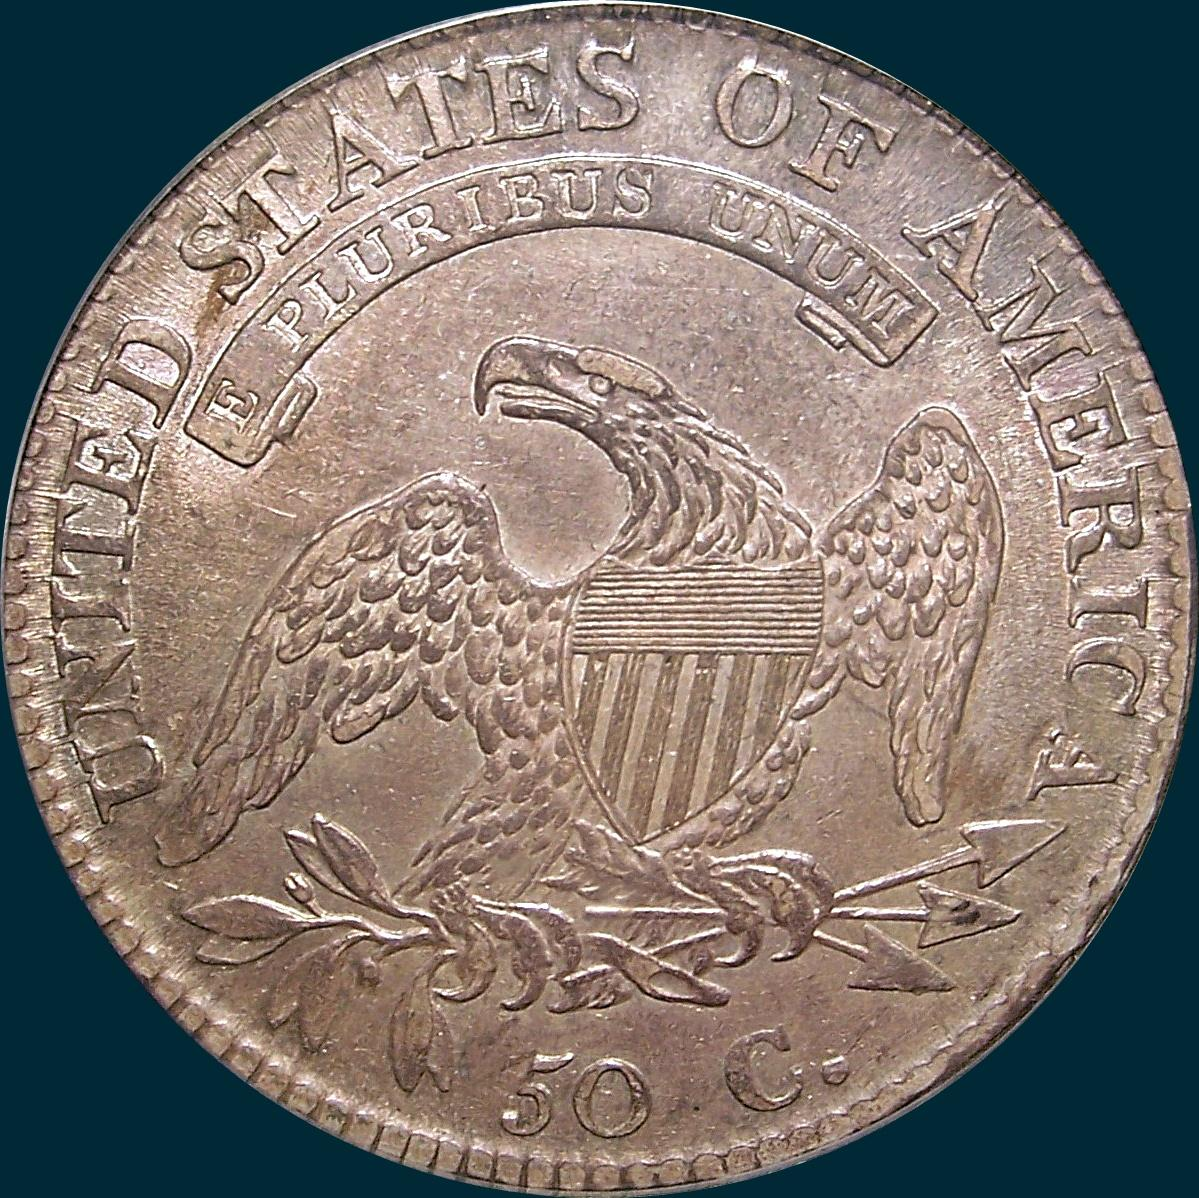 1812, O-102, 2 over 1, Overdate, 12/11, 2/1, 12 over 11, Small 8, Capped Bust Half Dollar